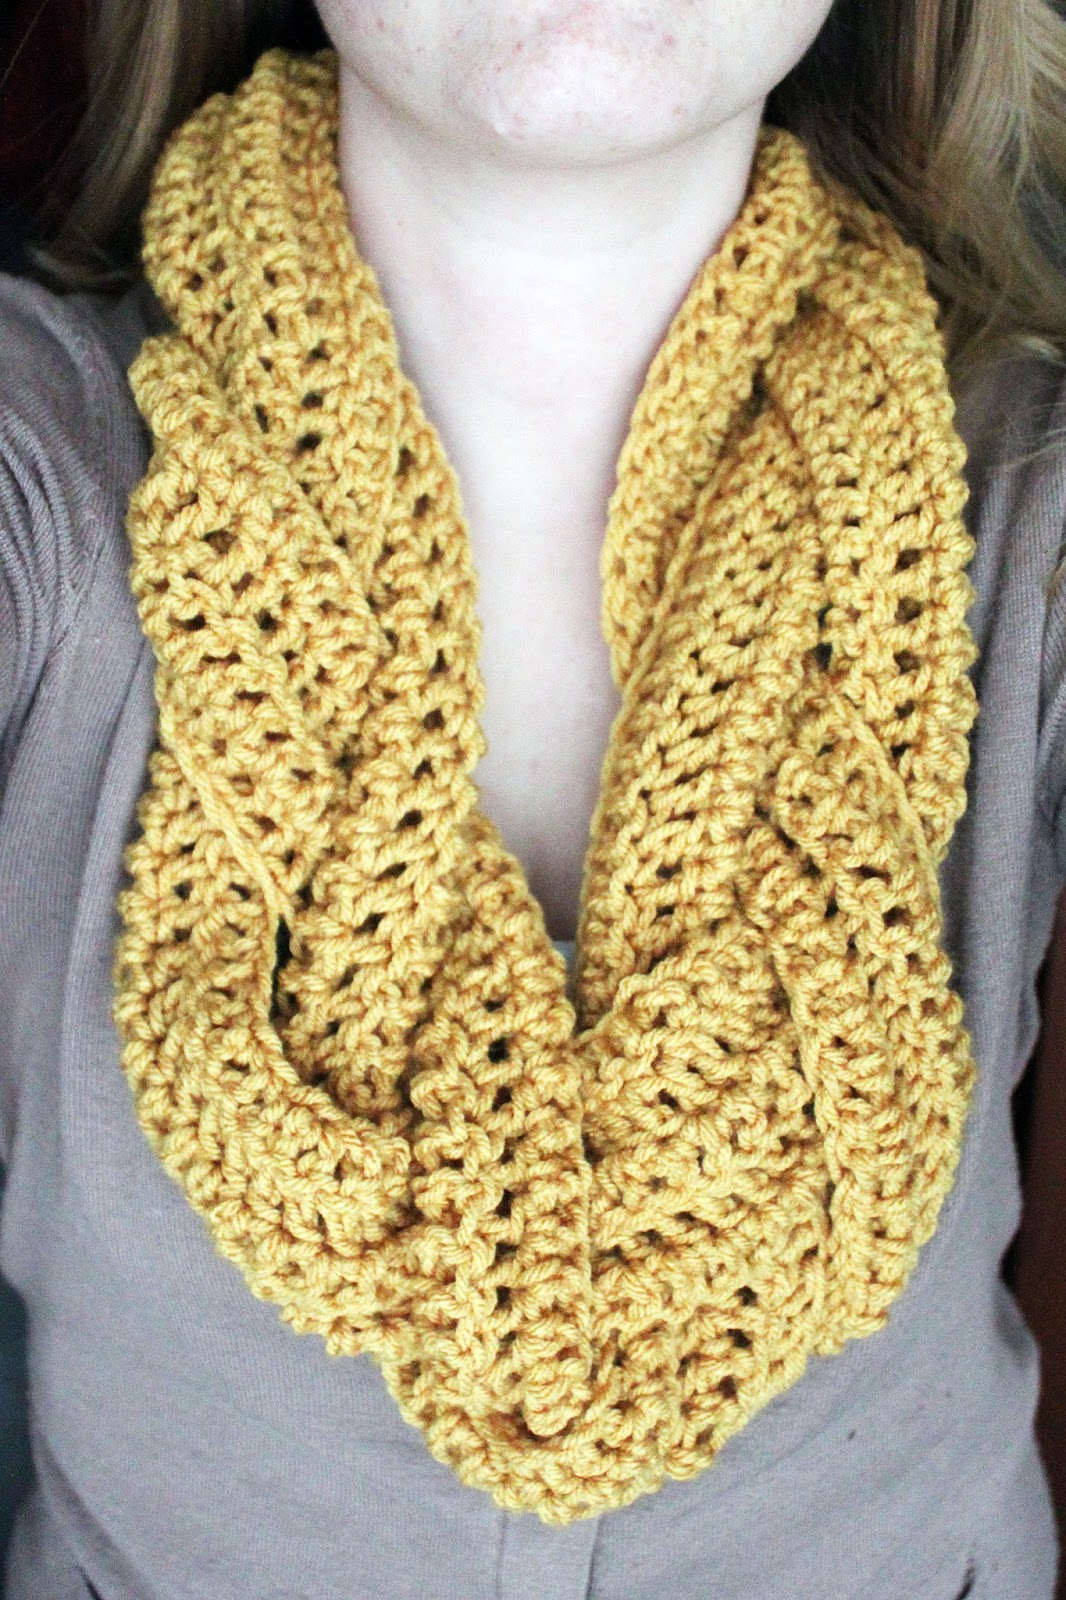 How To Crochet Scarfs : How To Crochet A Scarf Double crochet back onto the